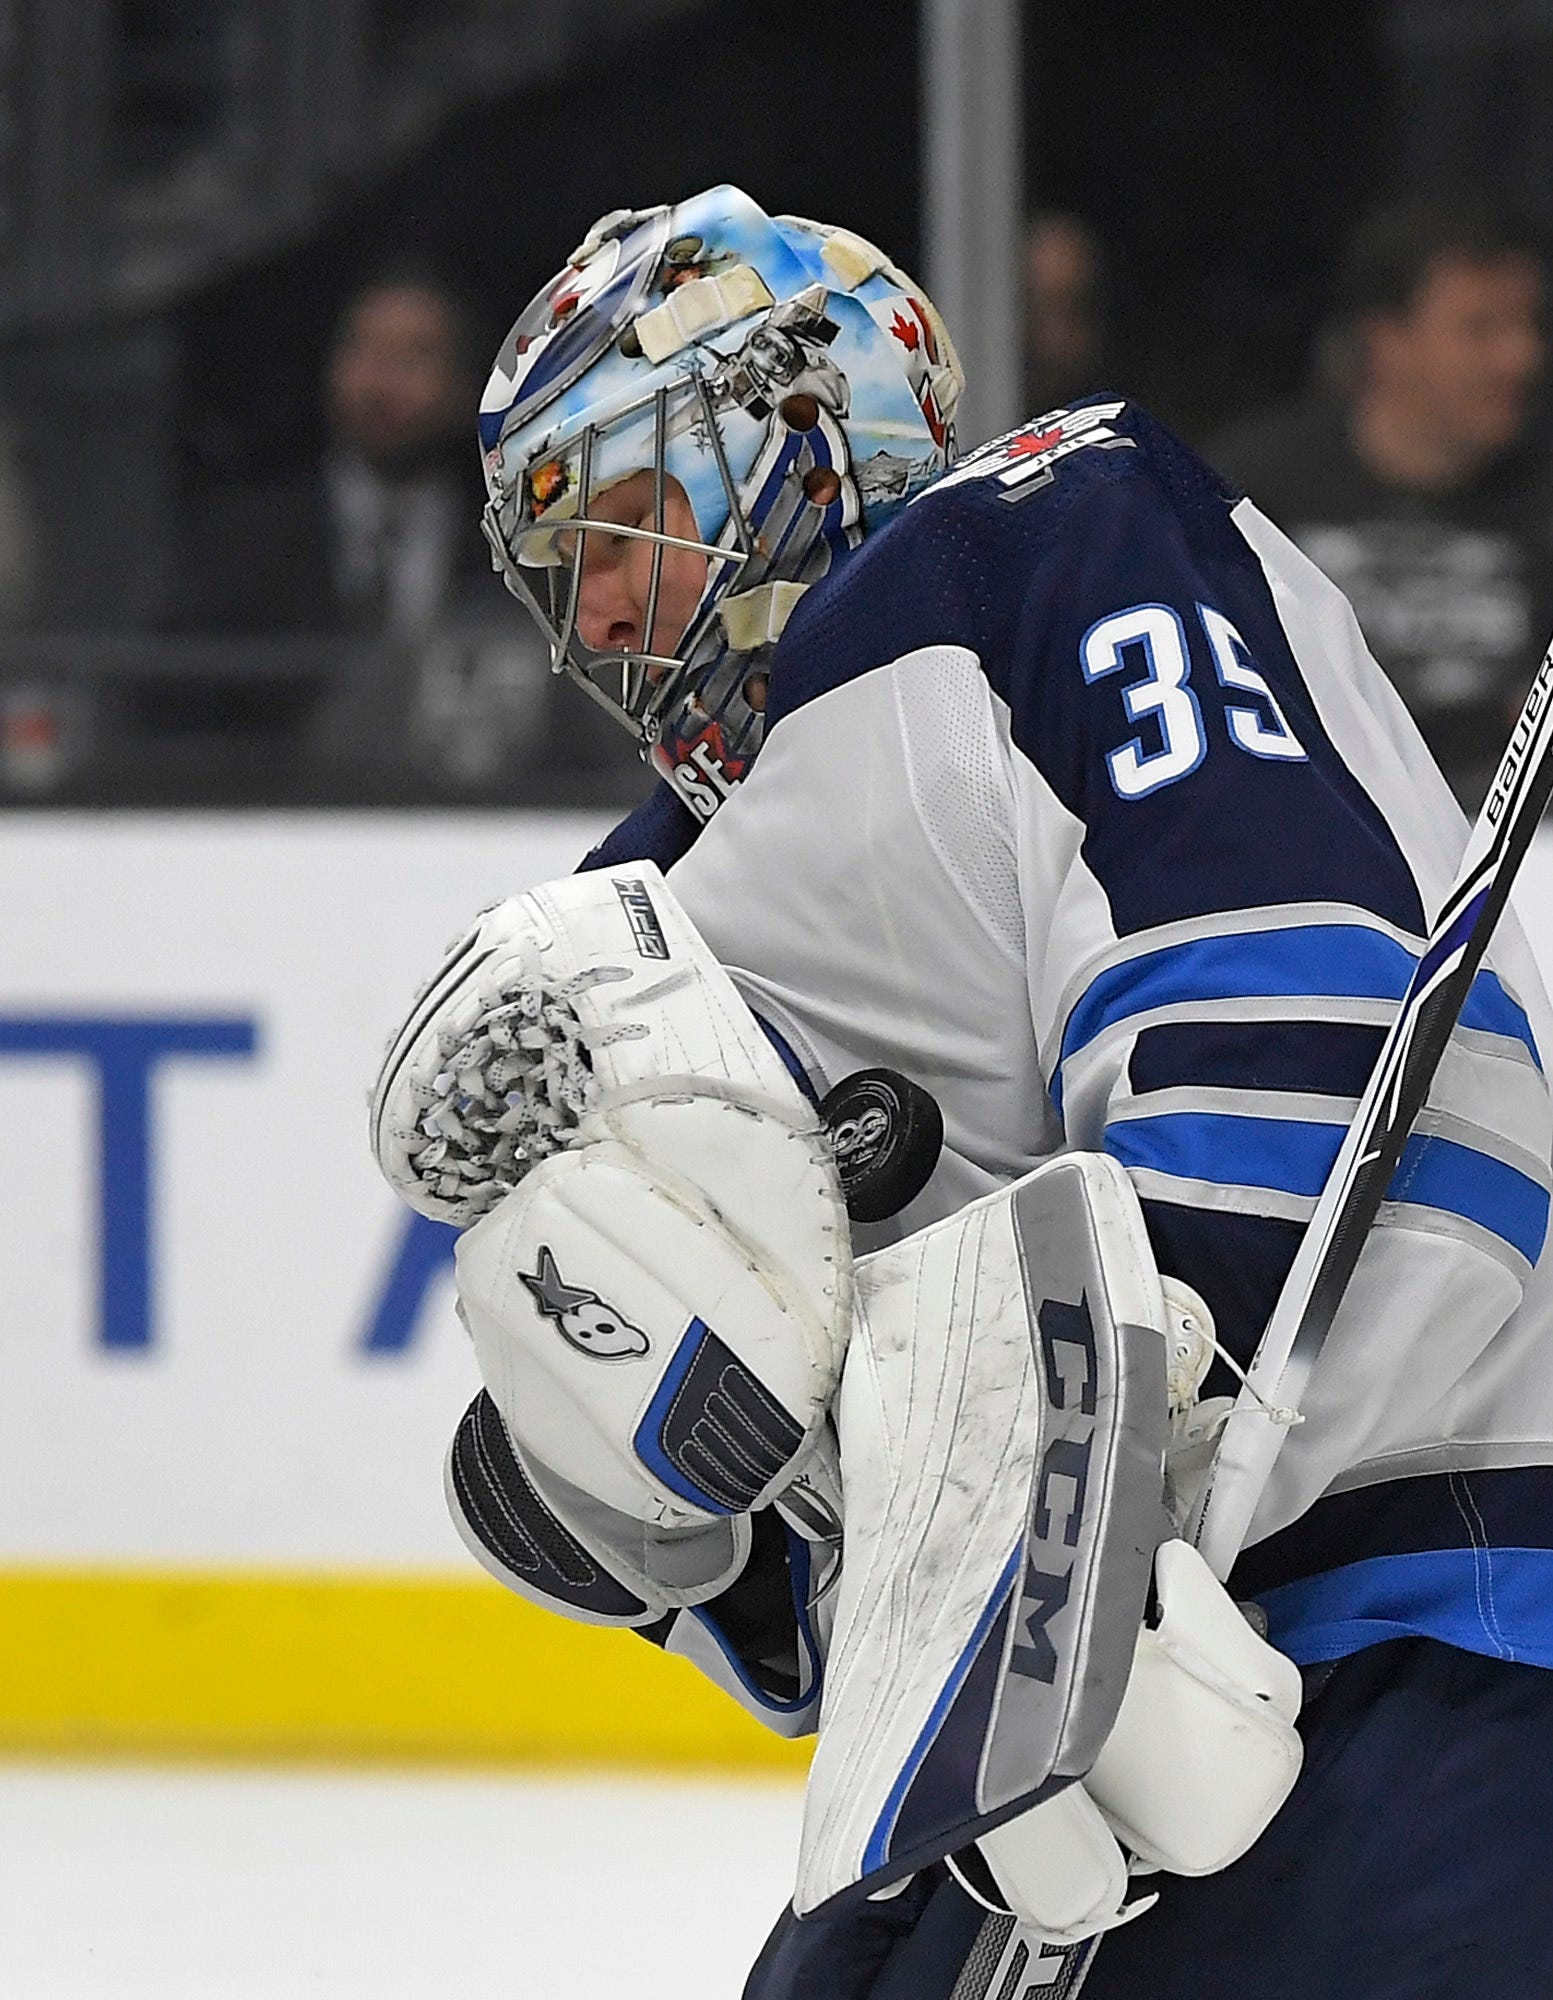 Lowry, Laine score in Jets' 2-1 win over slumping Kings